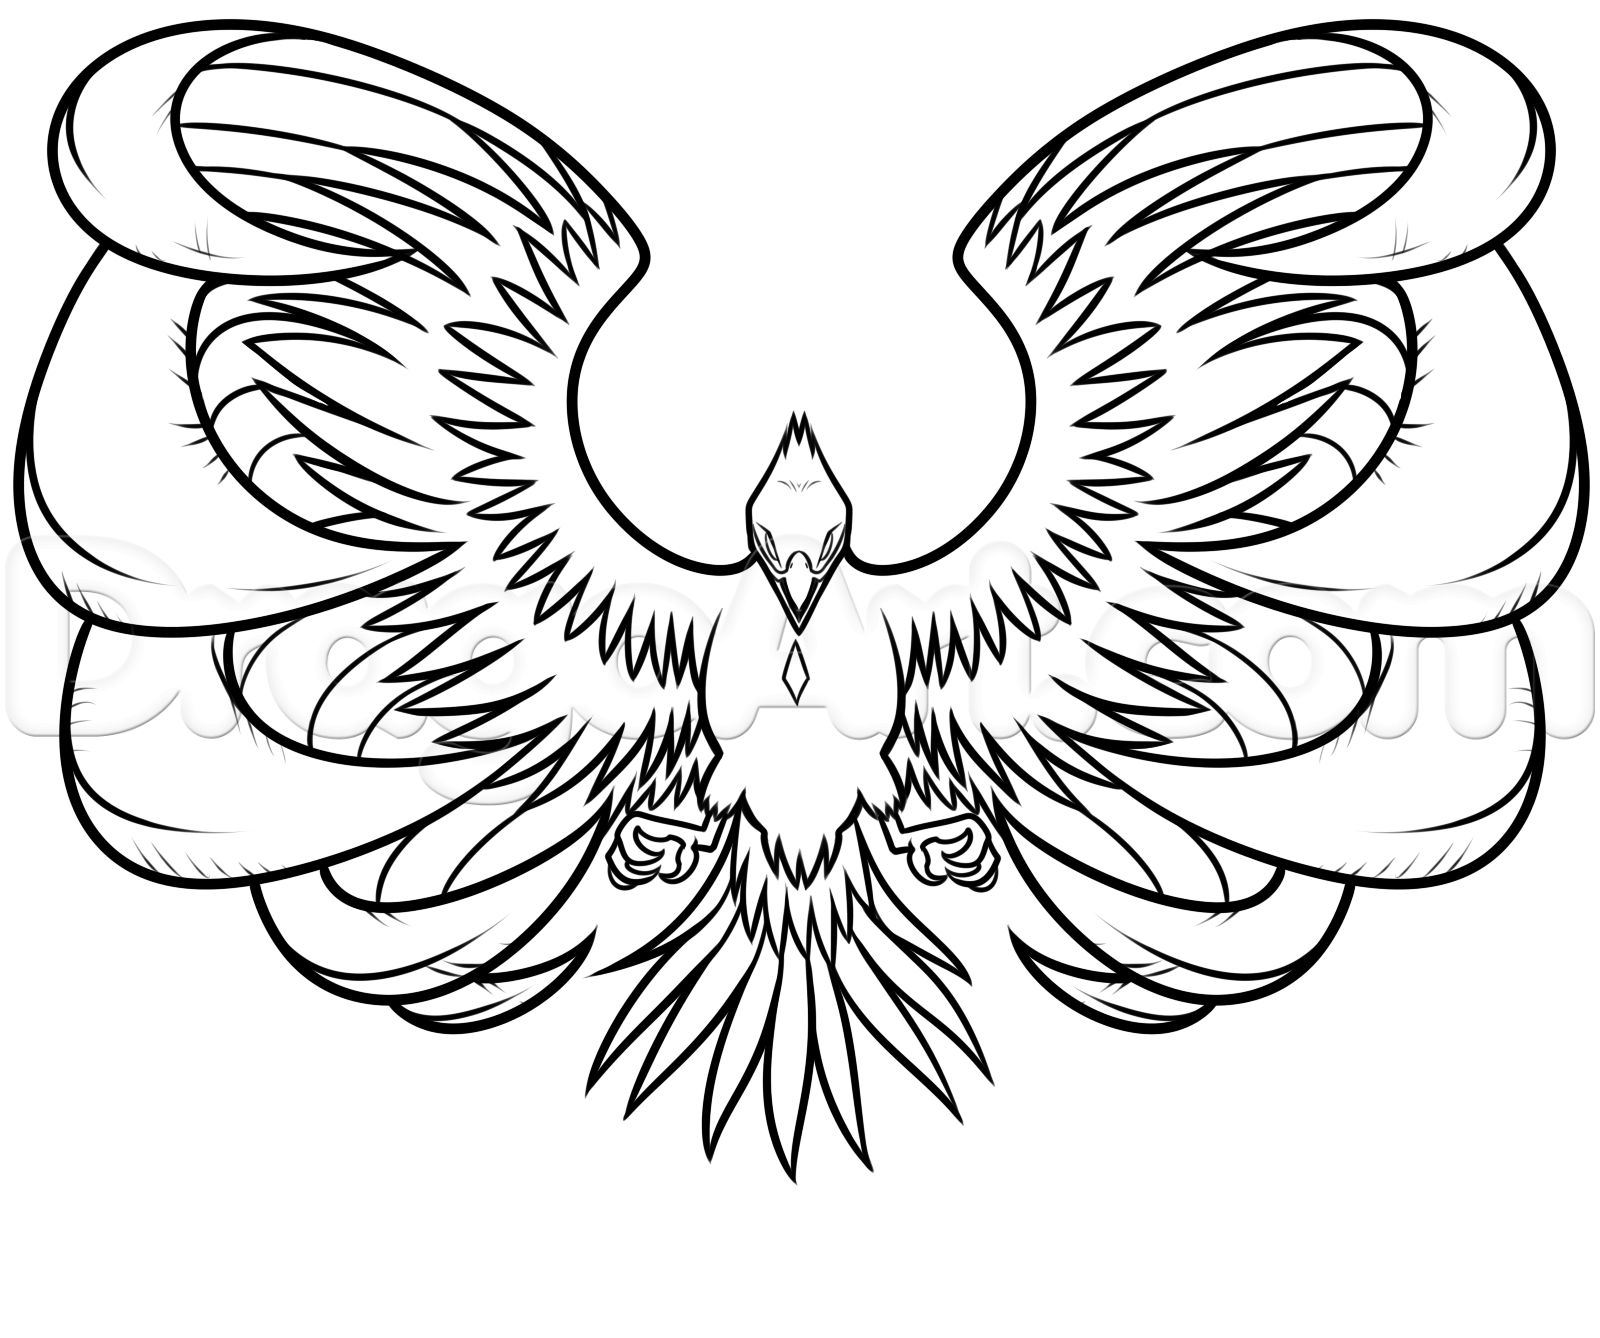 drawing a phoenix step by step step 8 | mythical creatures ...